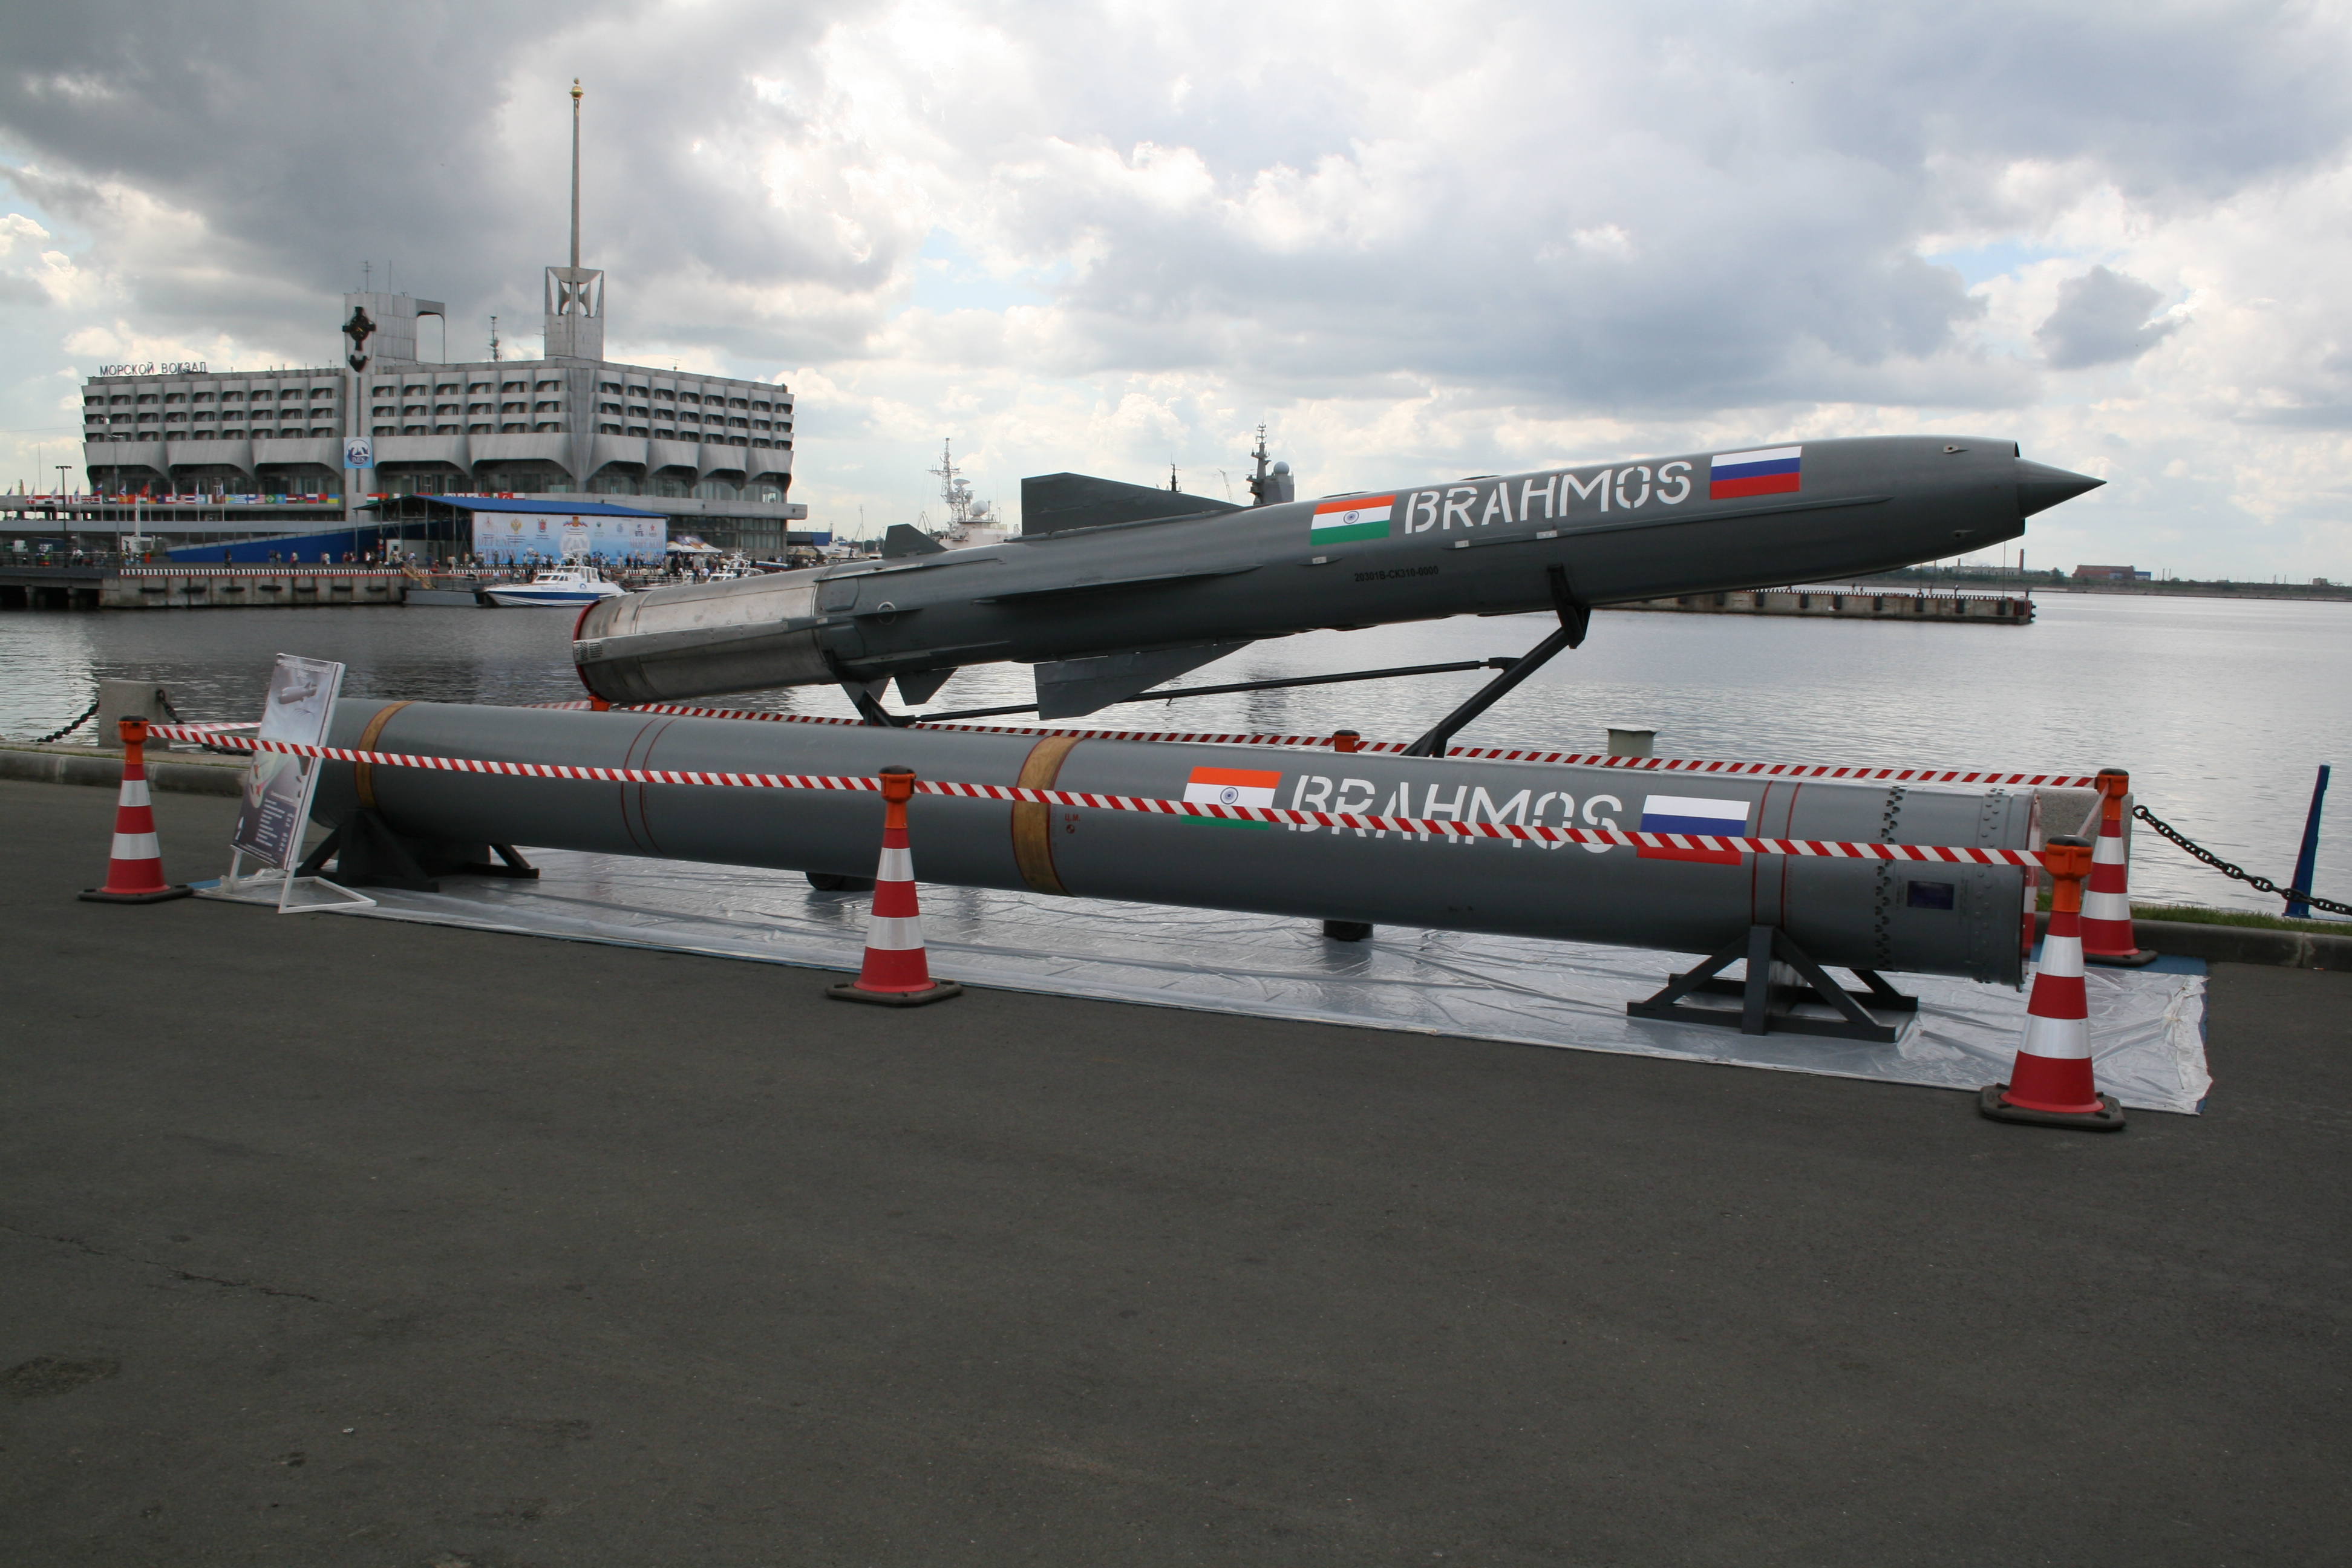 BrahMos missile was test-fired by the Indian Army at around 10 am from the Andaman and Nicobar Islands on Tuesday.